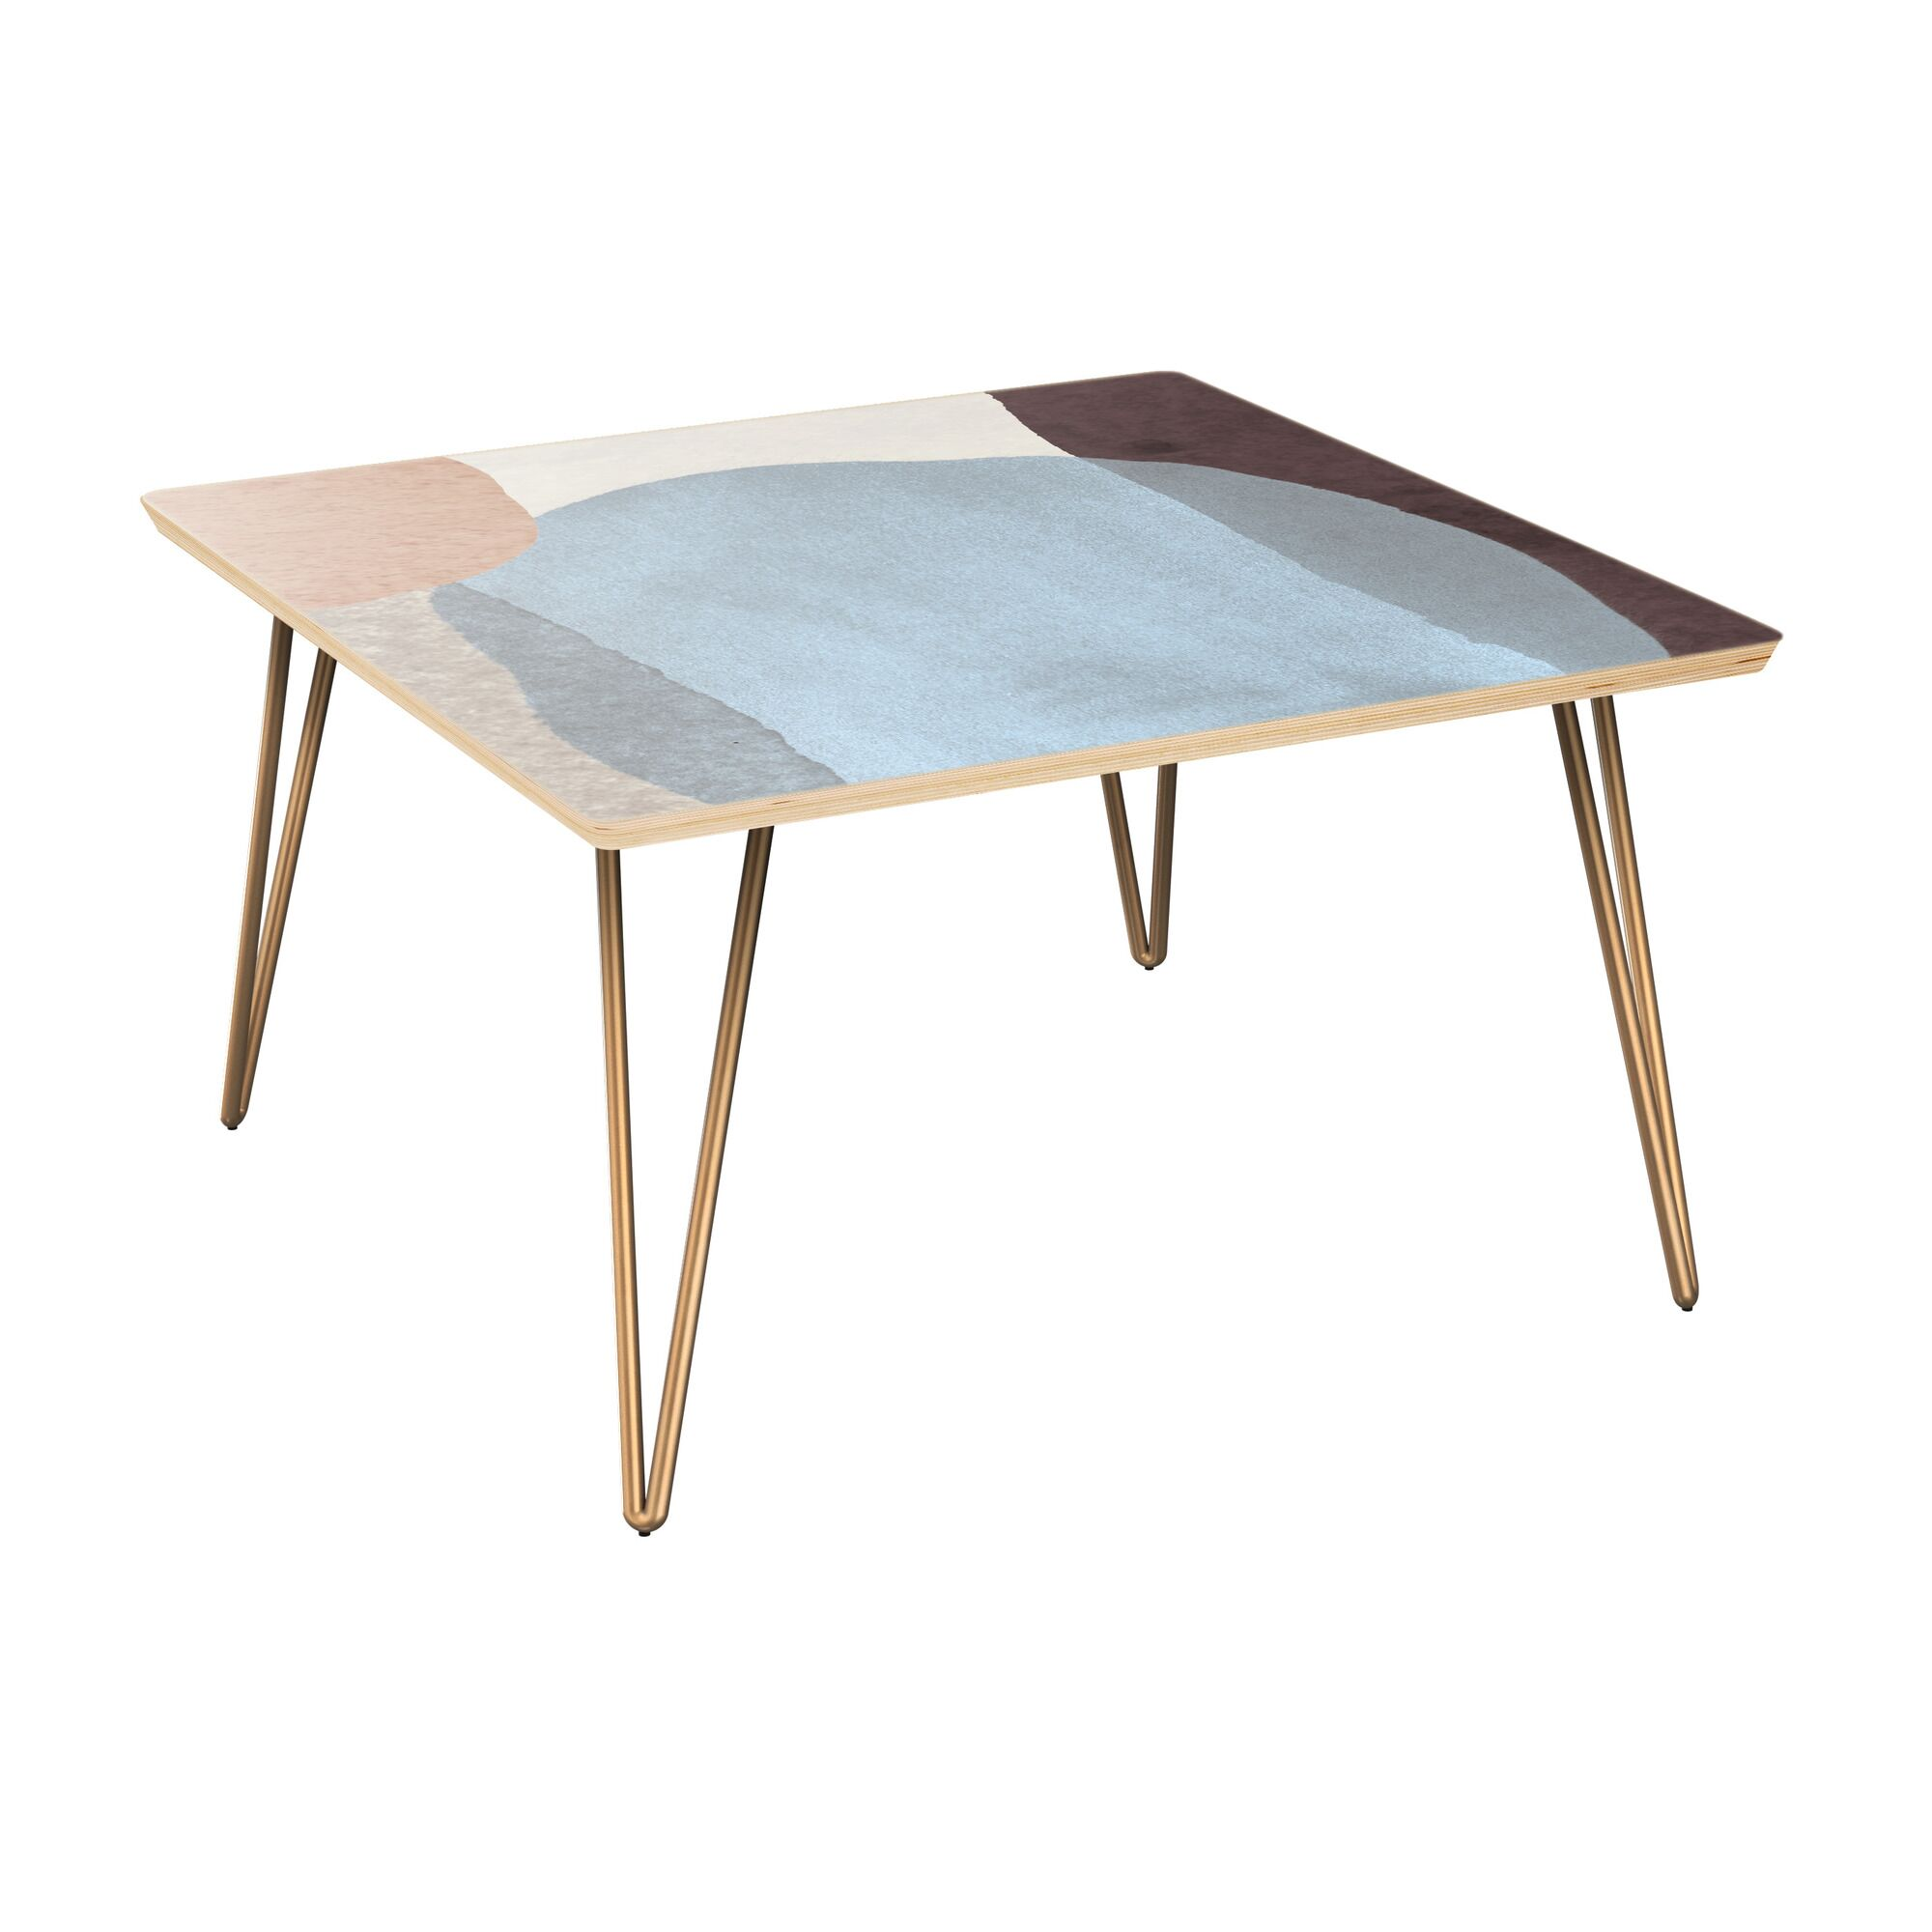 Evenson Coffee Table Table Top Color: Natural, Table Base Color: Brass